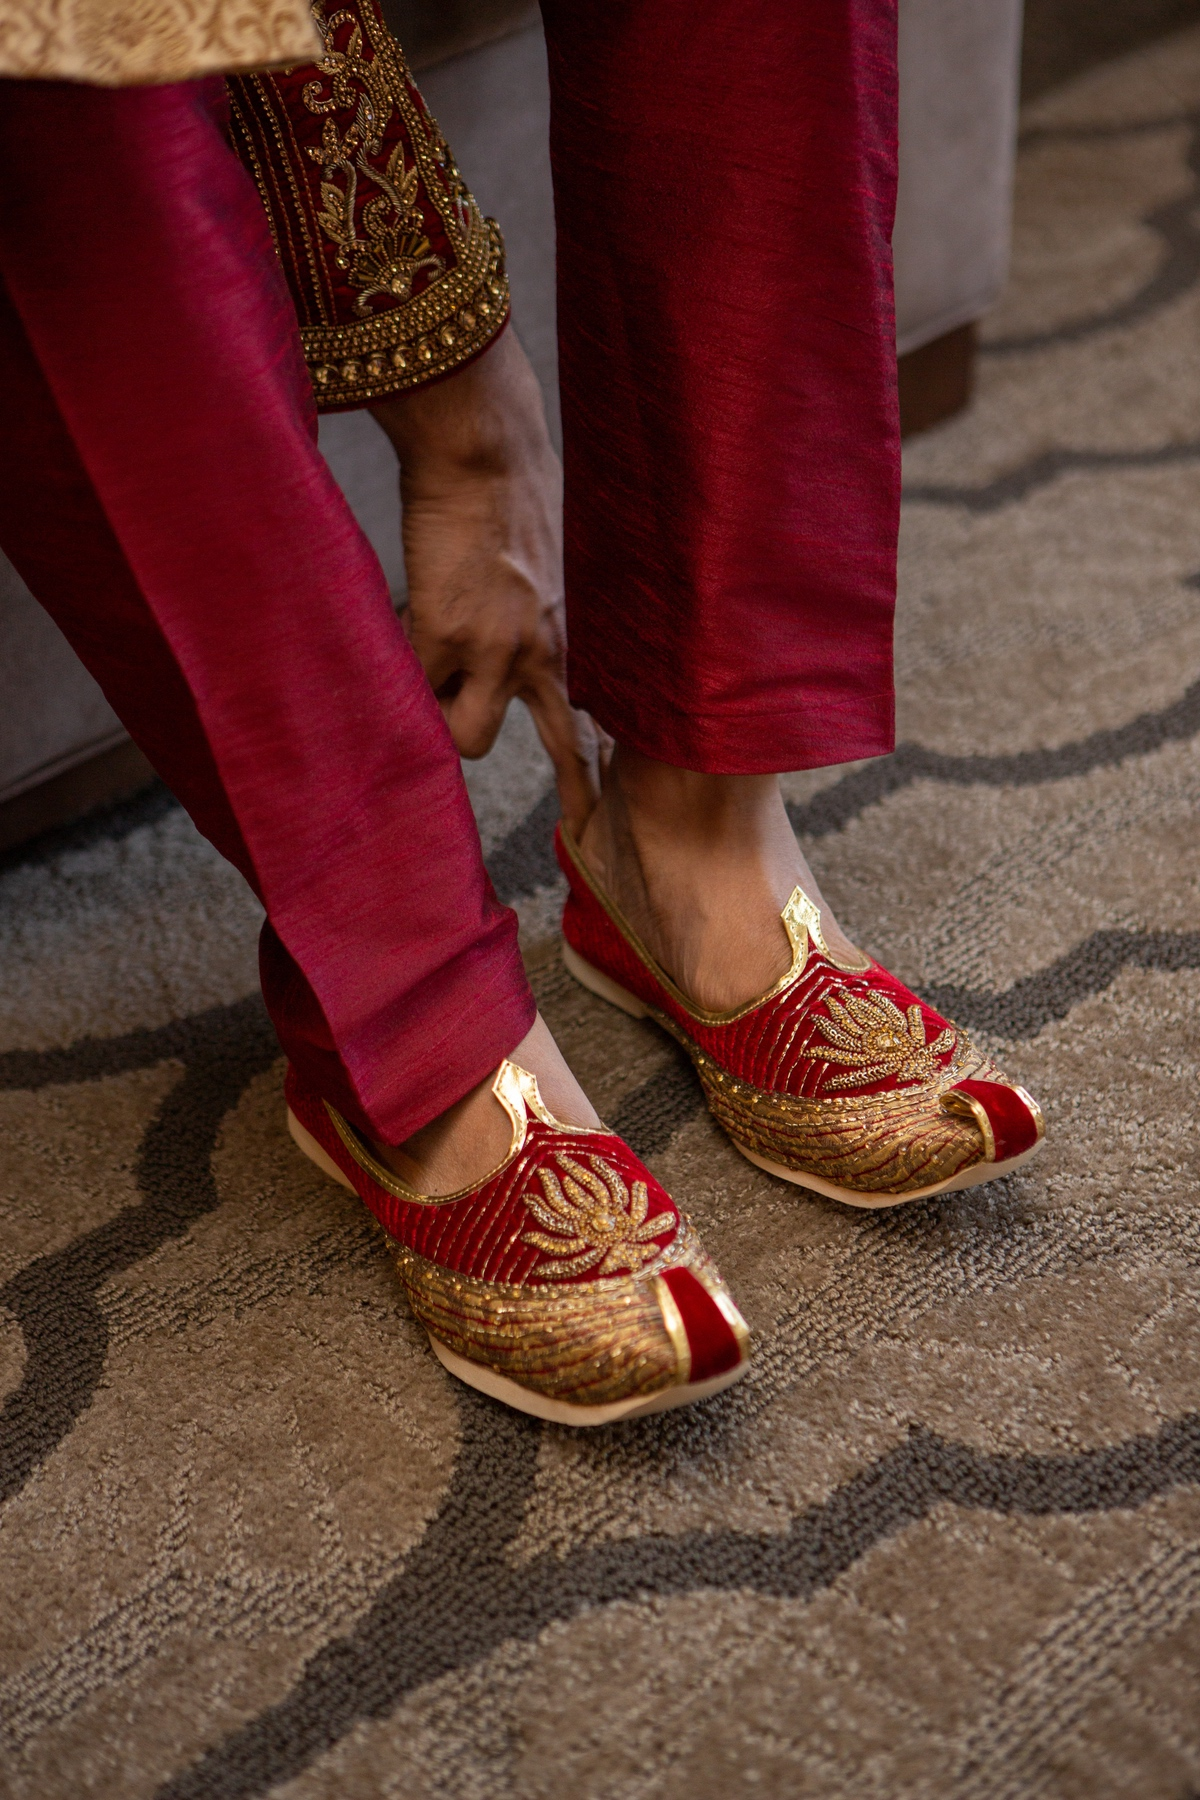 Le Cape Weddings - South Asian Wedding - Chicago Wedding Photographer P&V-24.jpg